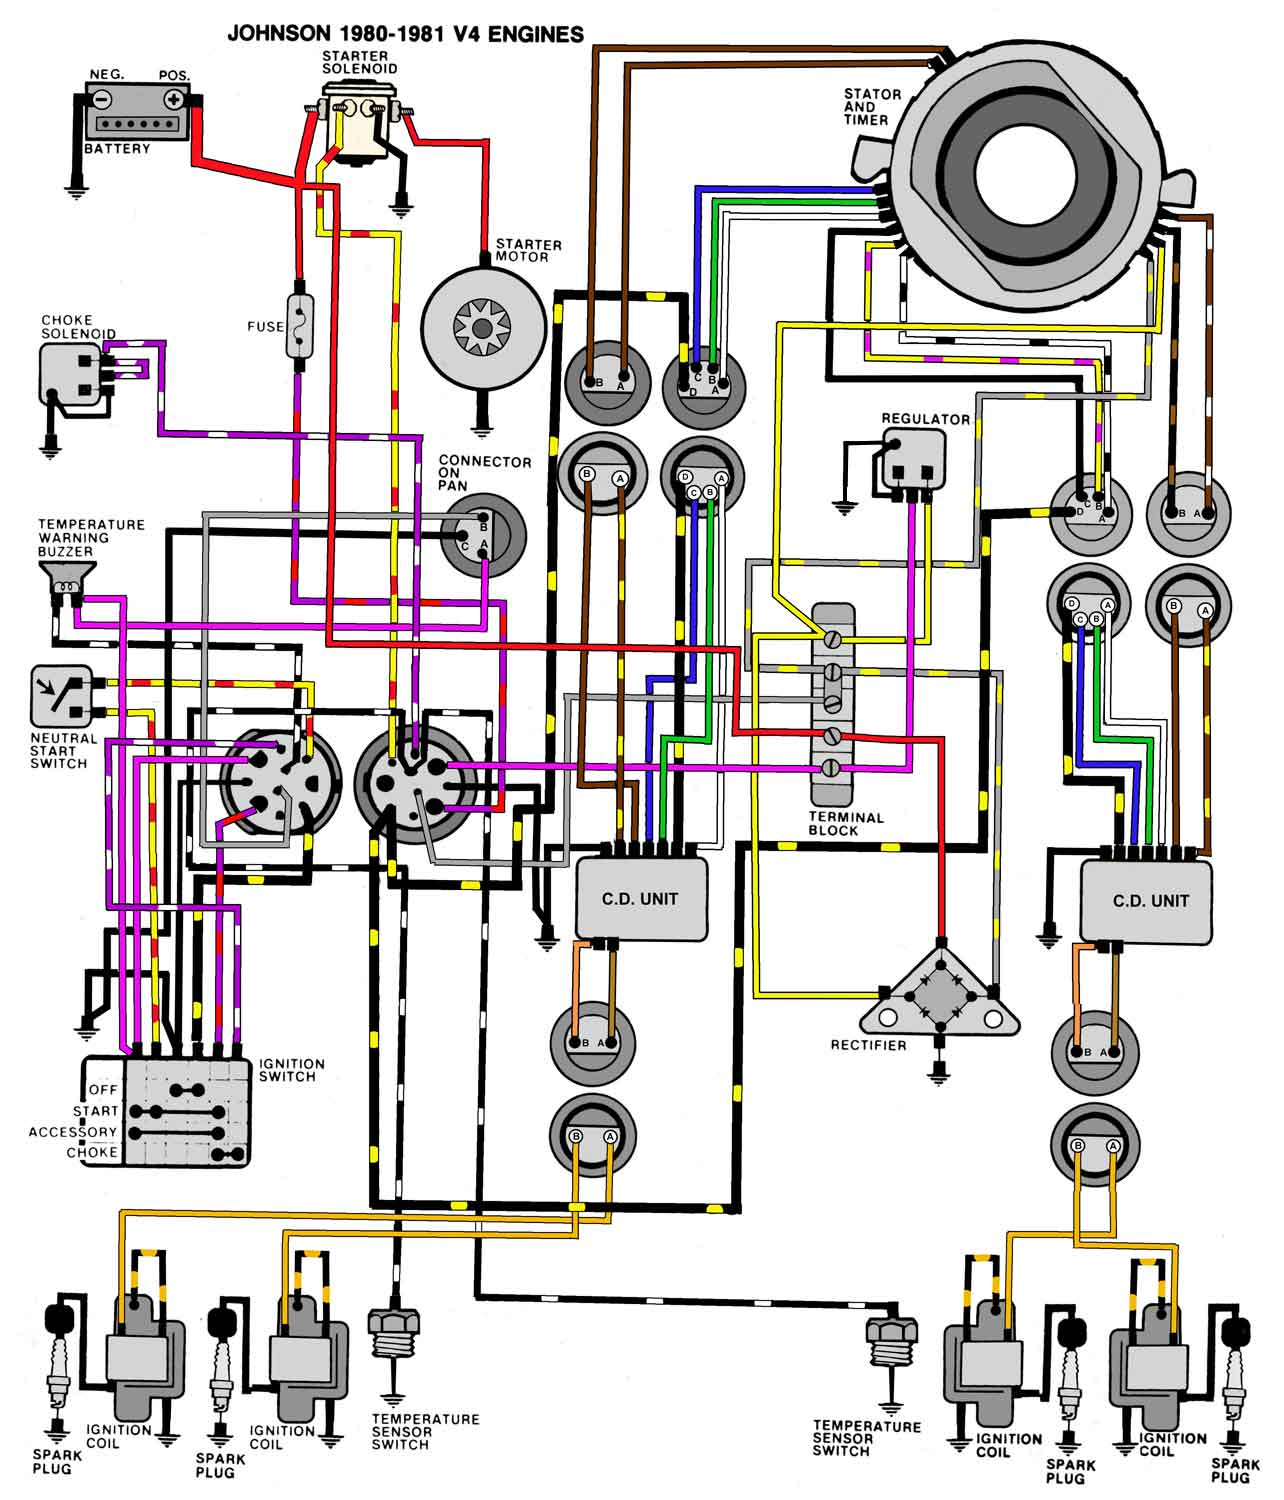 80_81_V4 50 hp mercury outboard wiring diagram tilt and trim switch wiring 70 HP Johnson Ignition Wiring at bakdesigns.co